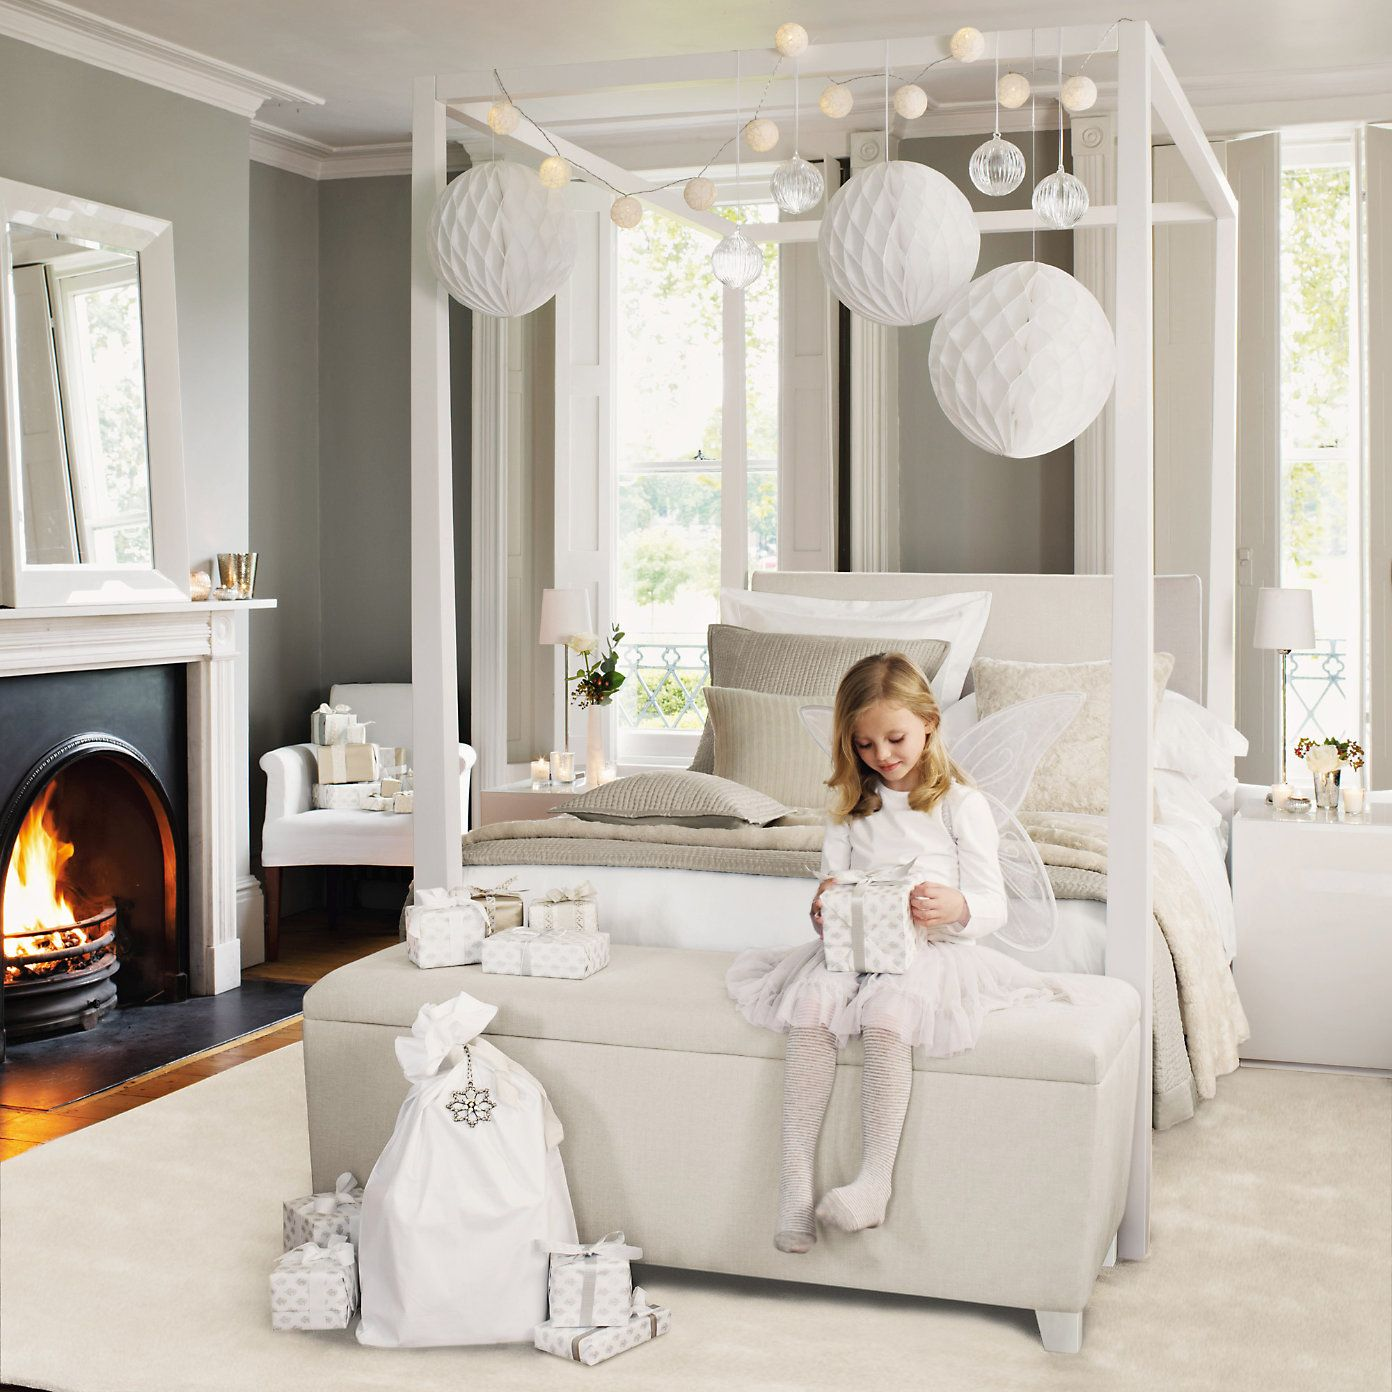 Linden Four Poster Bed Beds The White Company Beds